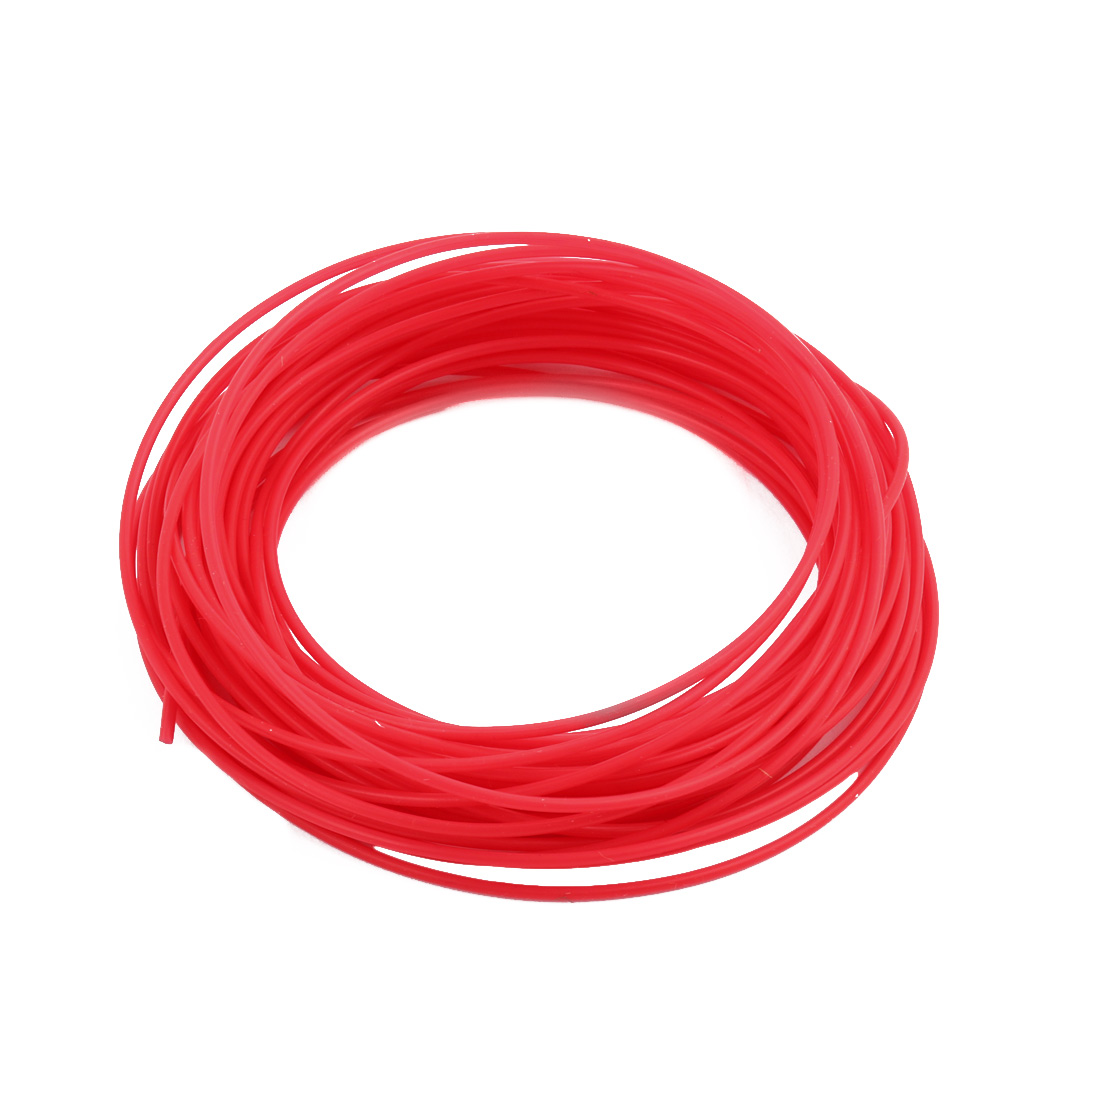 1.34mmx1.64mm PTFE Resistant High Temperature Red Tubing 10 Meters 32.8Ft